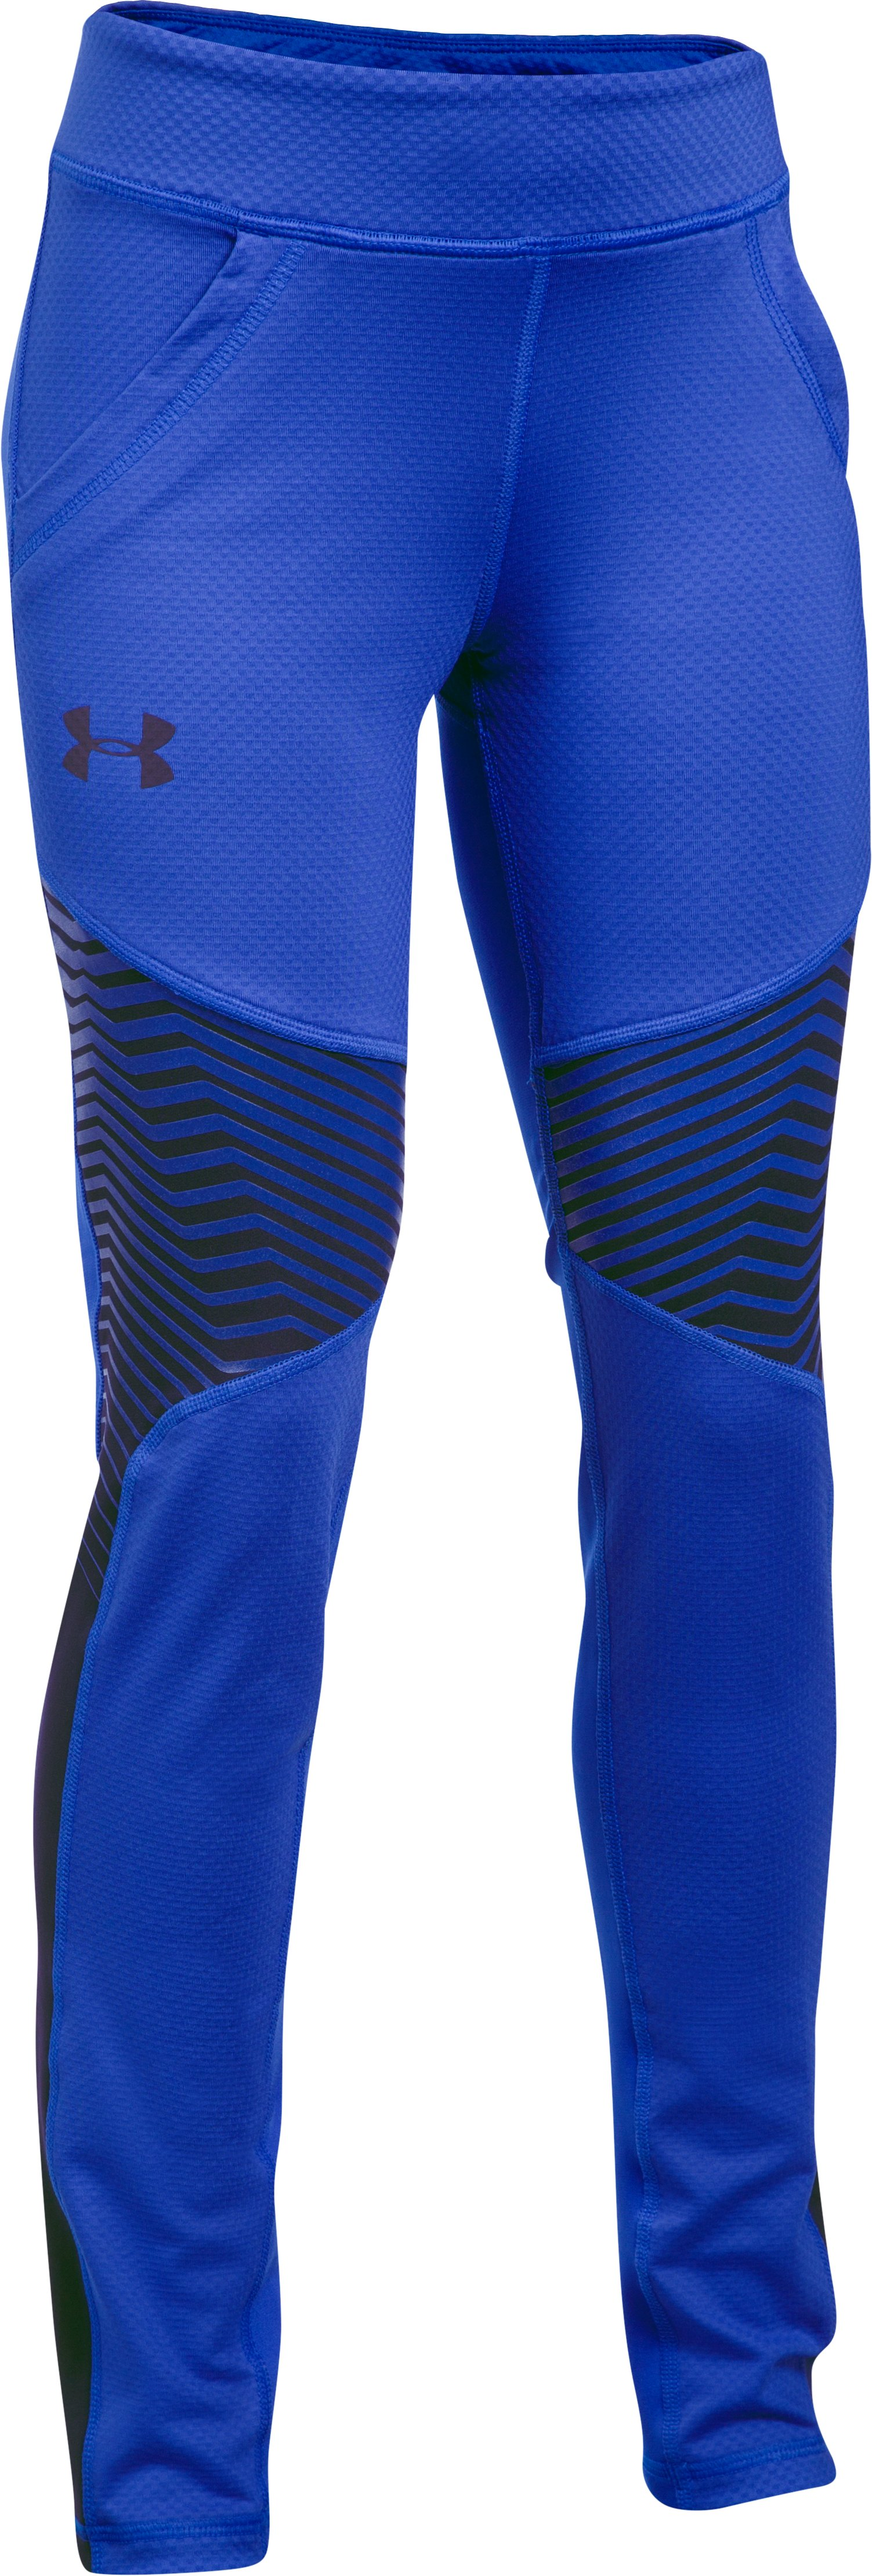 Girls' ColdGear® Reactor Leggings, LAPIS BLUE,